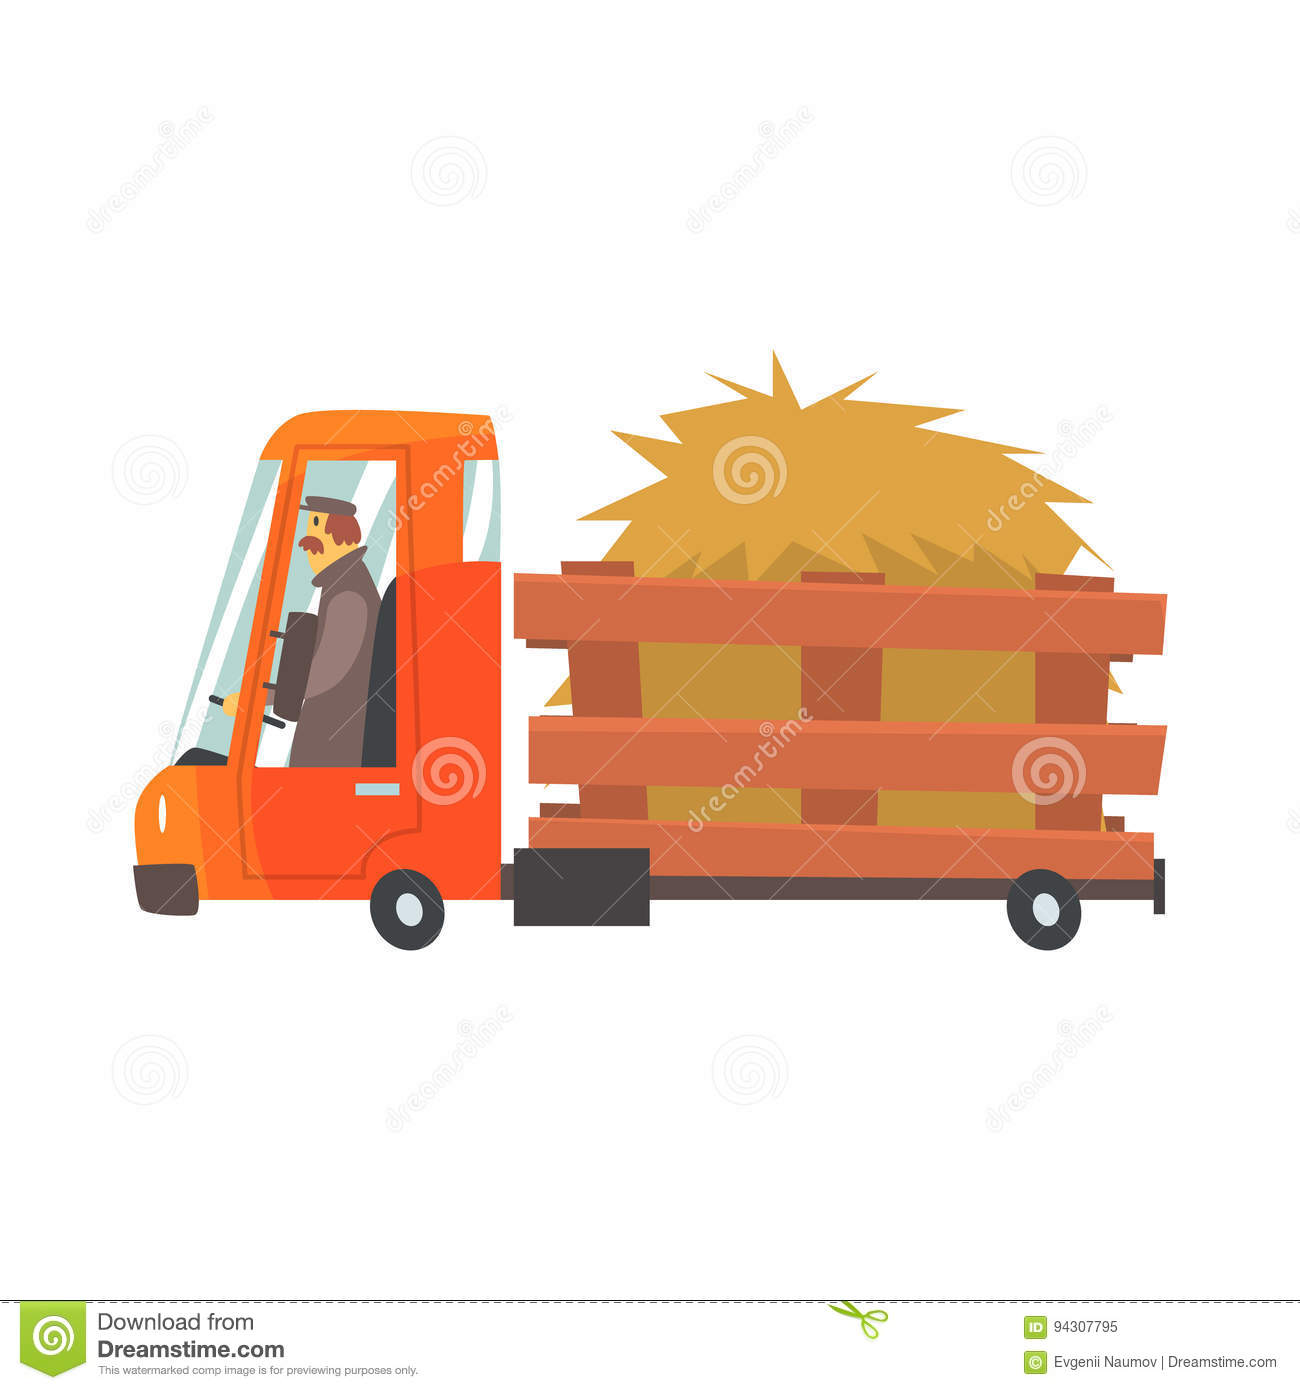 Hay Farmer Tractor Cartoon : Cartoon truckload of hay farmer truck vector illustration